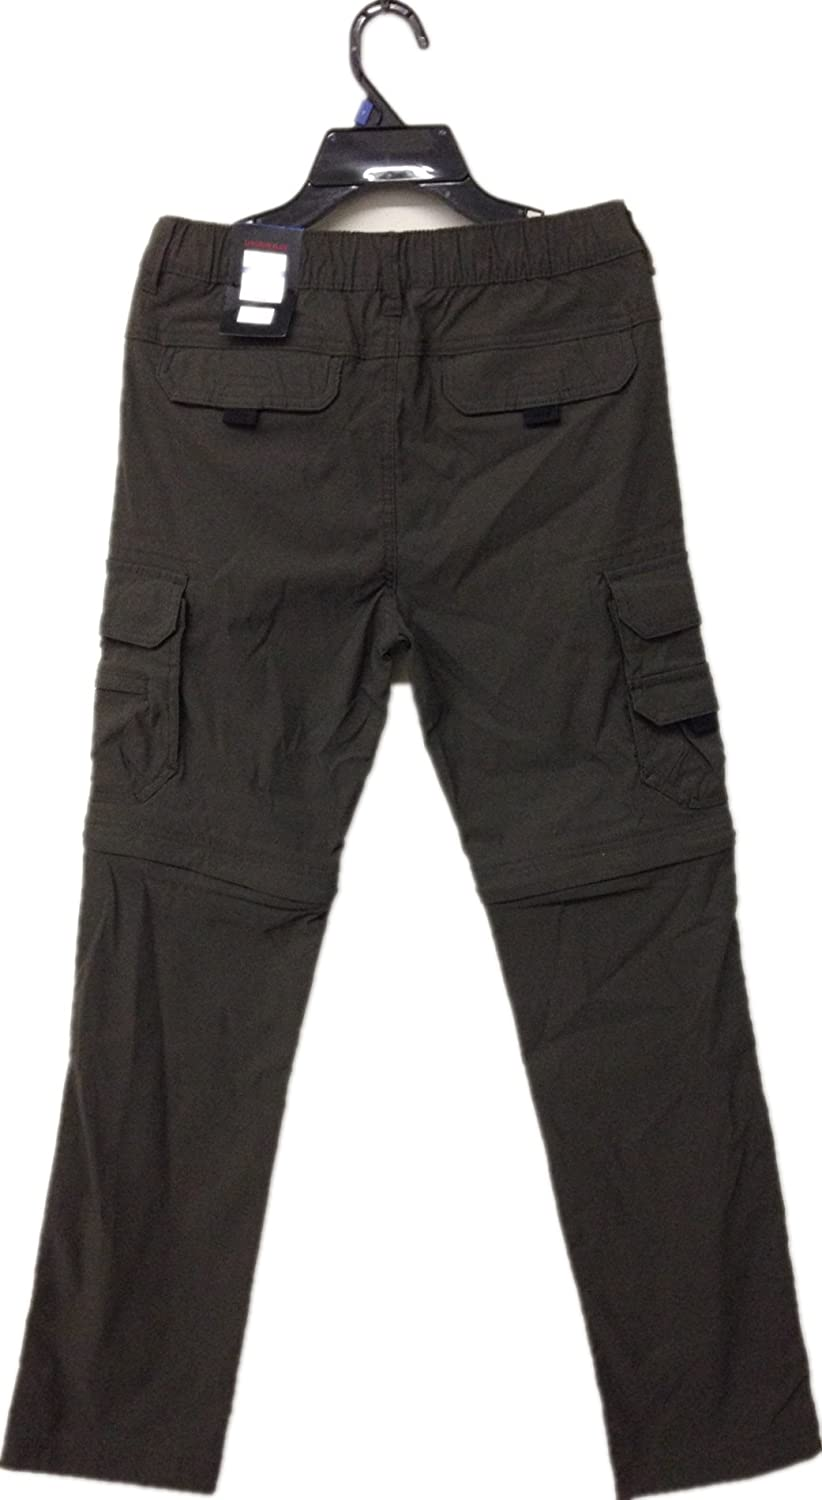 14//16 Dk Reptile, Large UNIONBAY BOYsConvertible Lightweight Comfort Stretch Cargo Pants